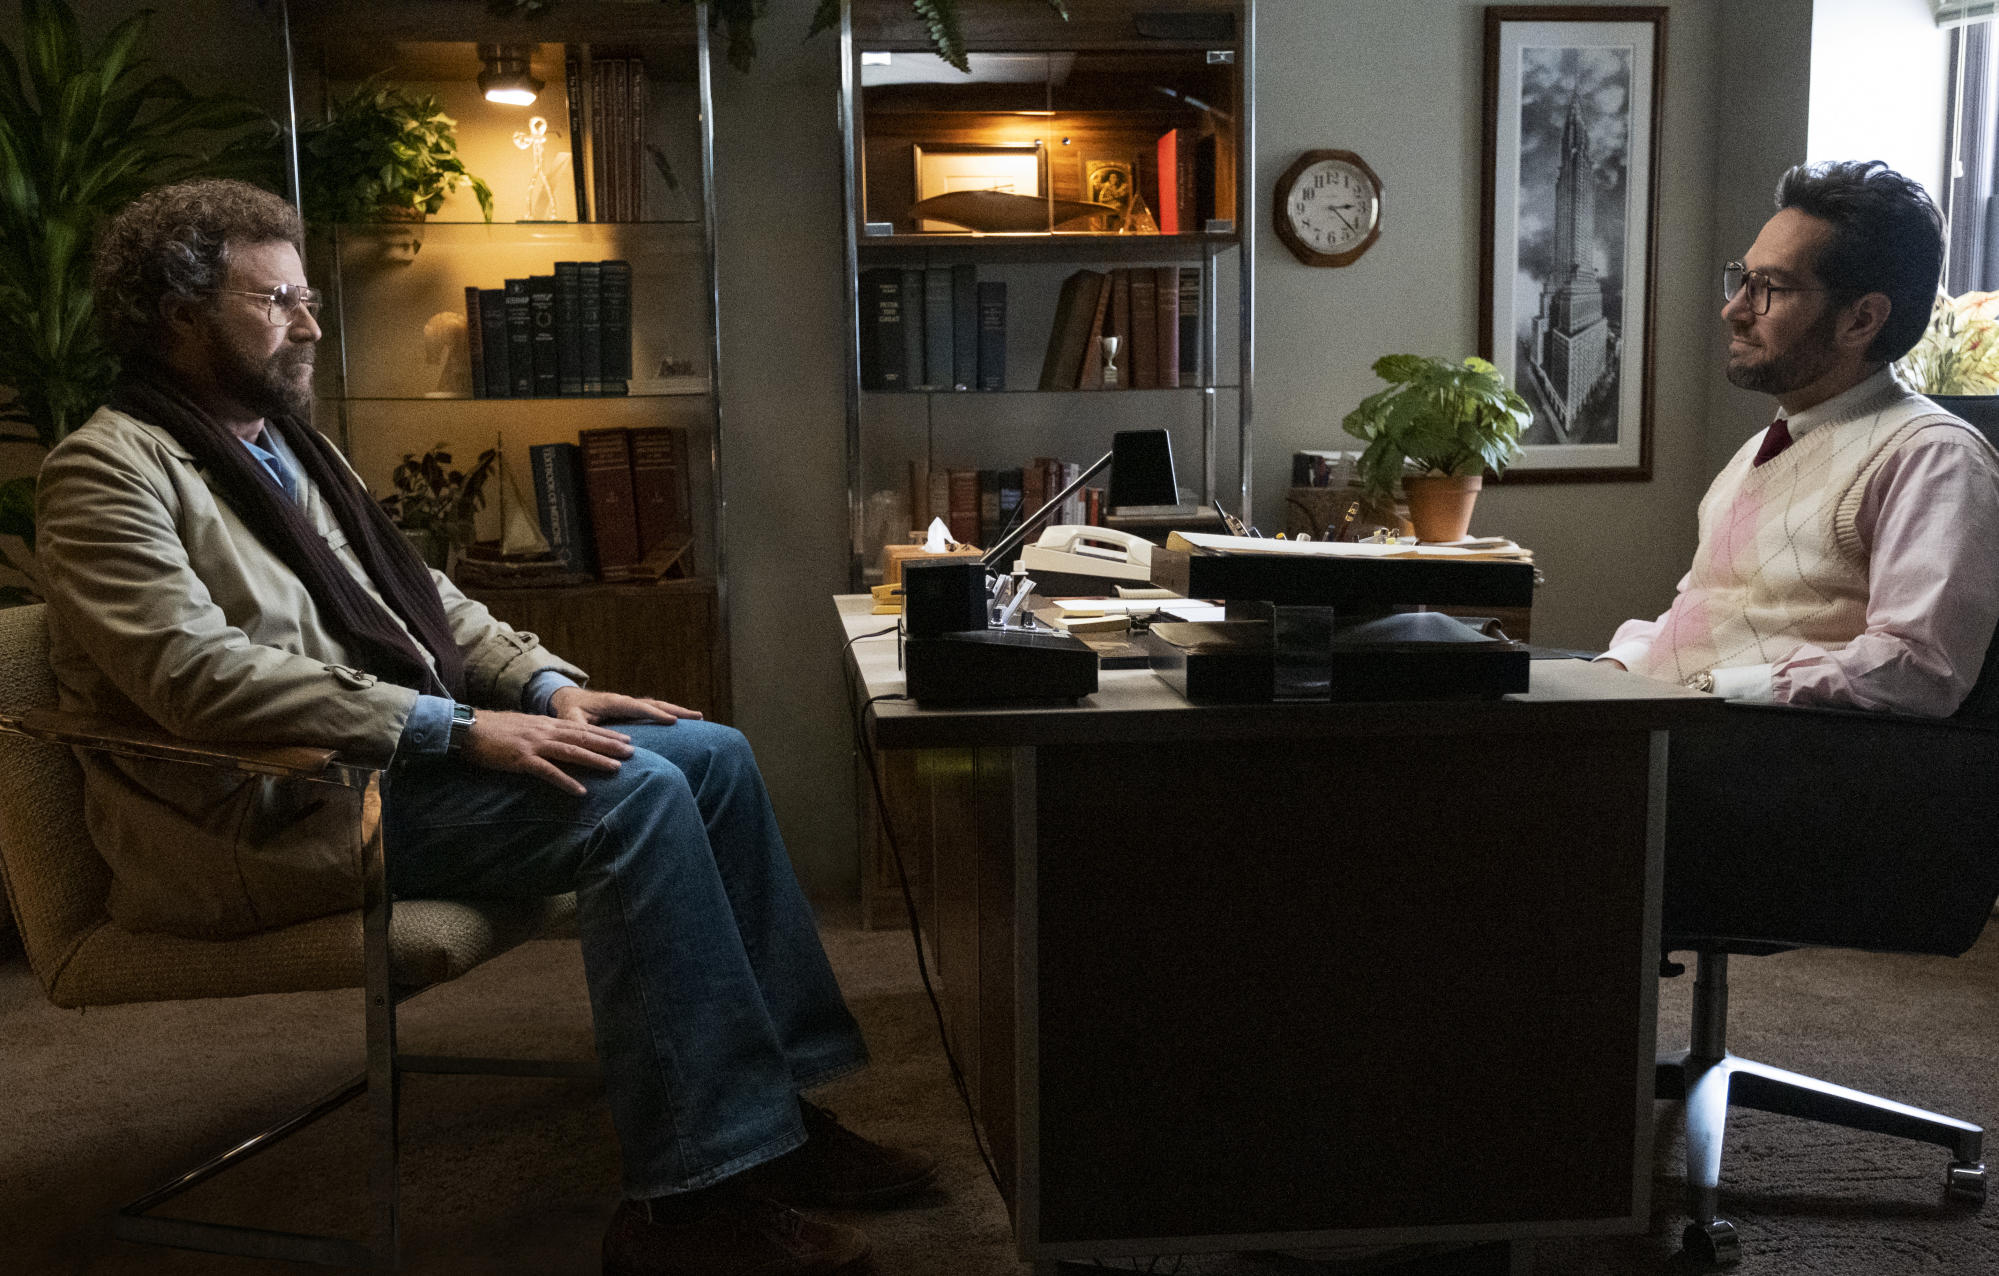 Paul Rudd and Will Ferrell unrecognisable in first look at 'The Shrink Next Door'